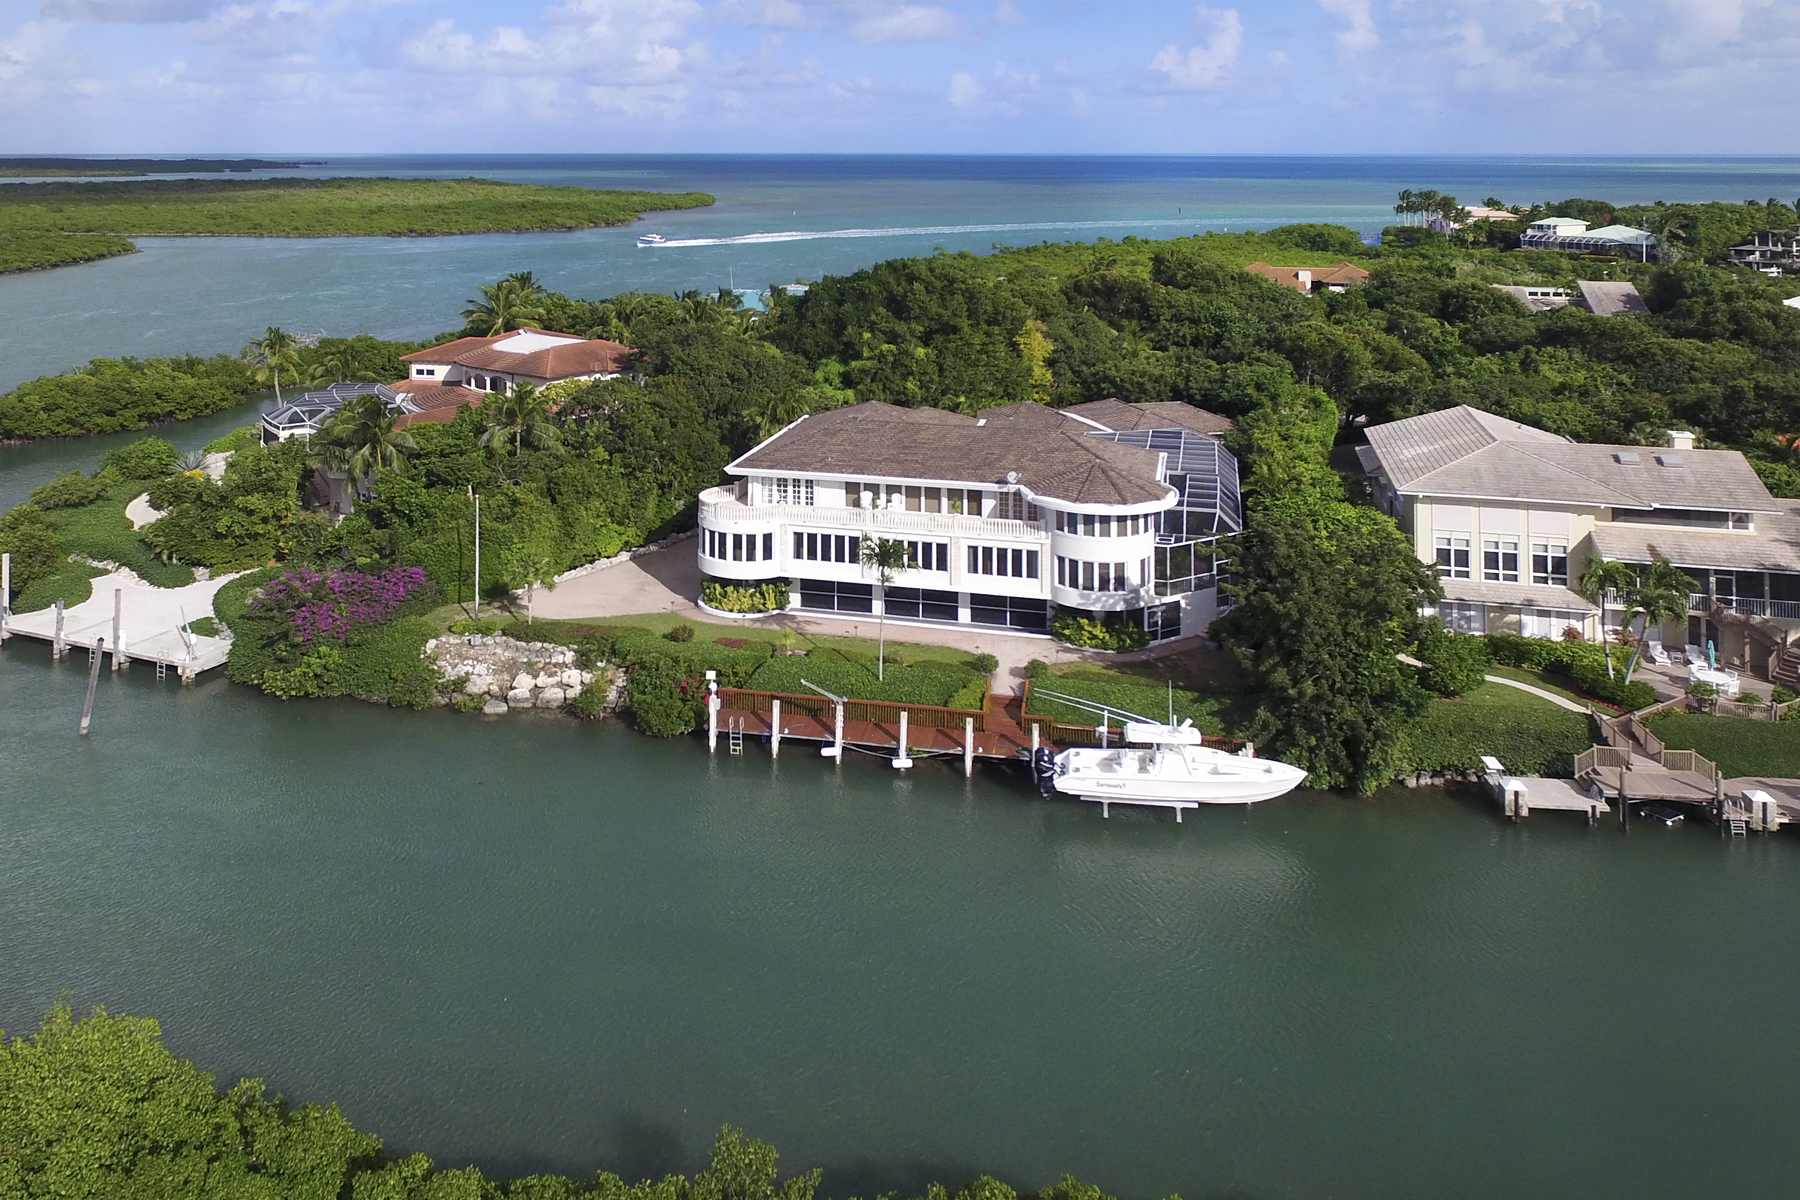 Single Family Home for Sale at Exceptional Family Compound at Ocean Reef 34 Cardinal Lane Key Largo, Florida, 33037 United States